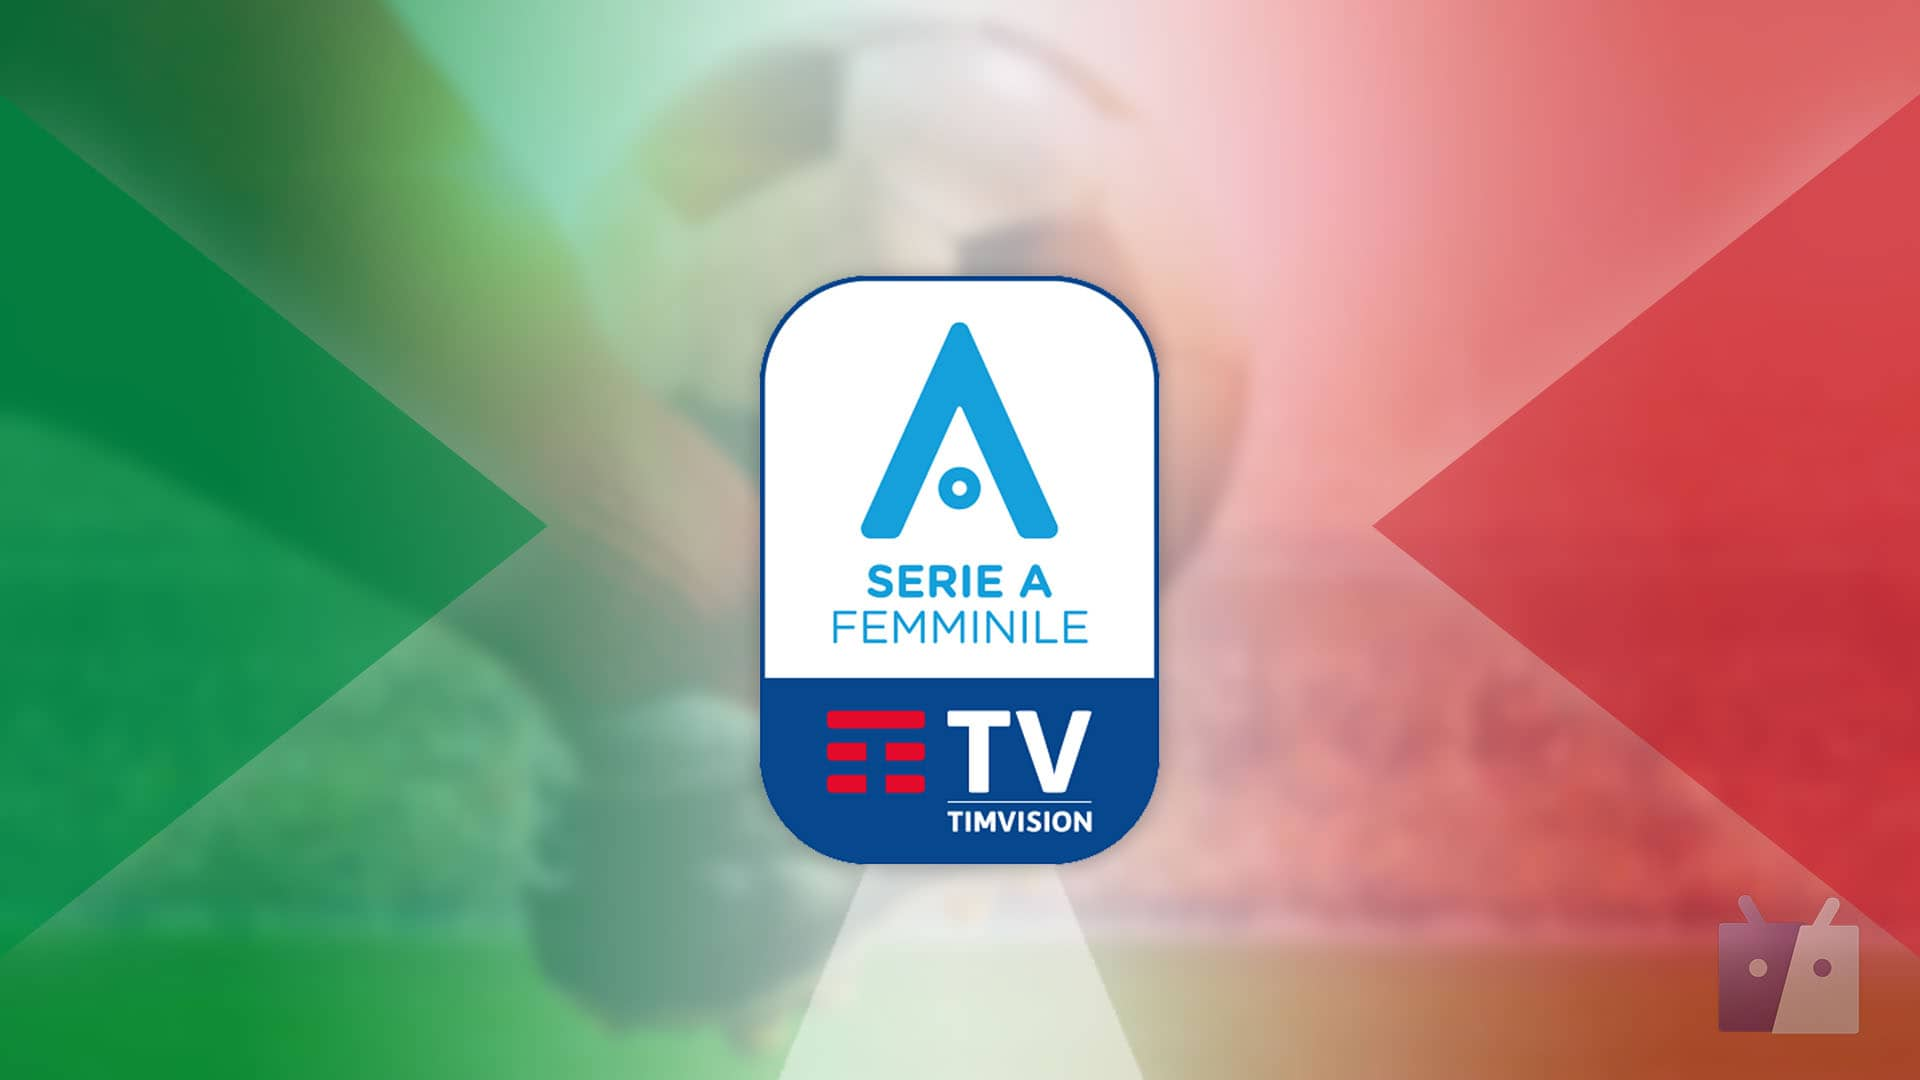 Dove vedere la partita tra Inter e Sassuolo in TV e streaming